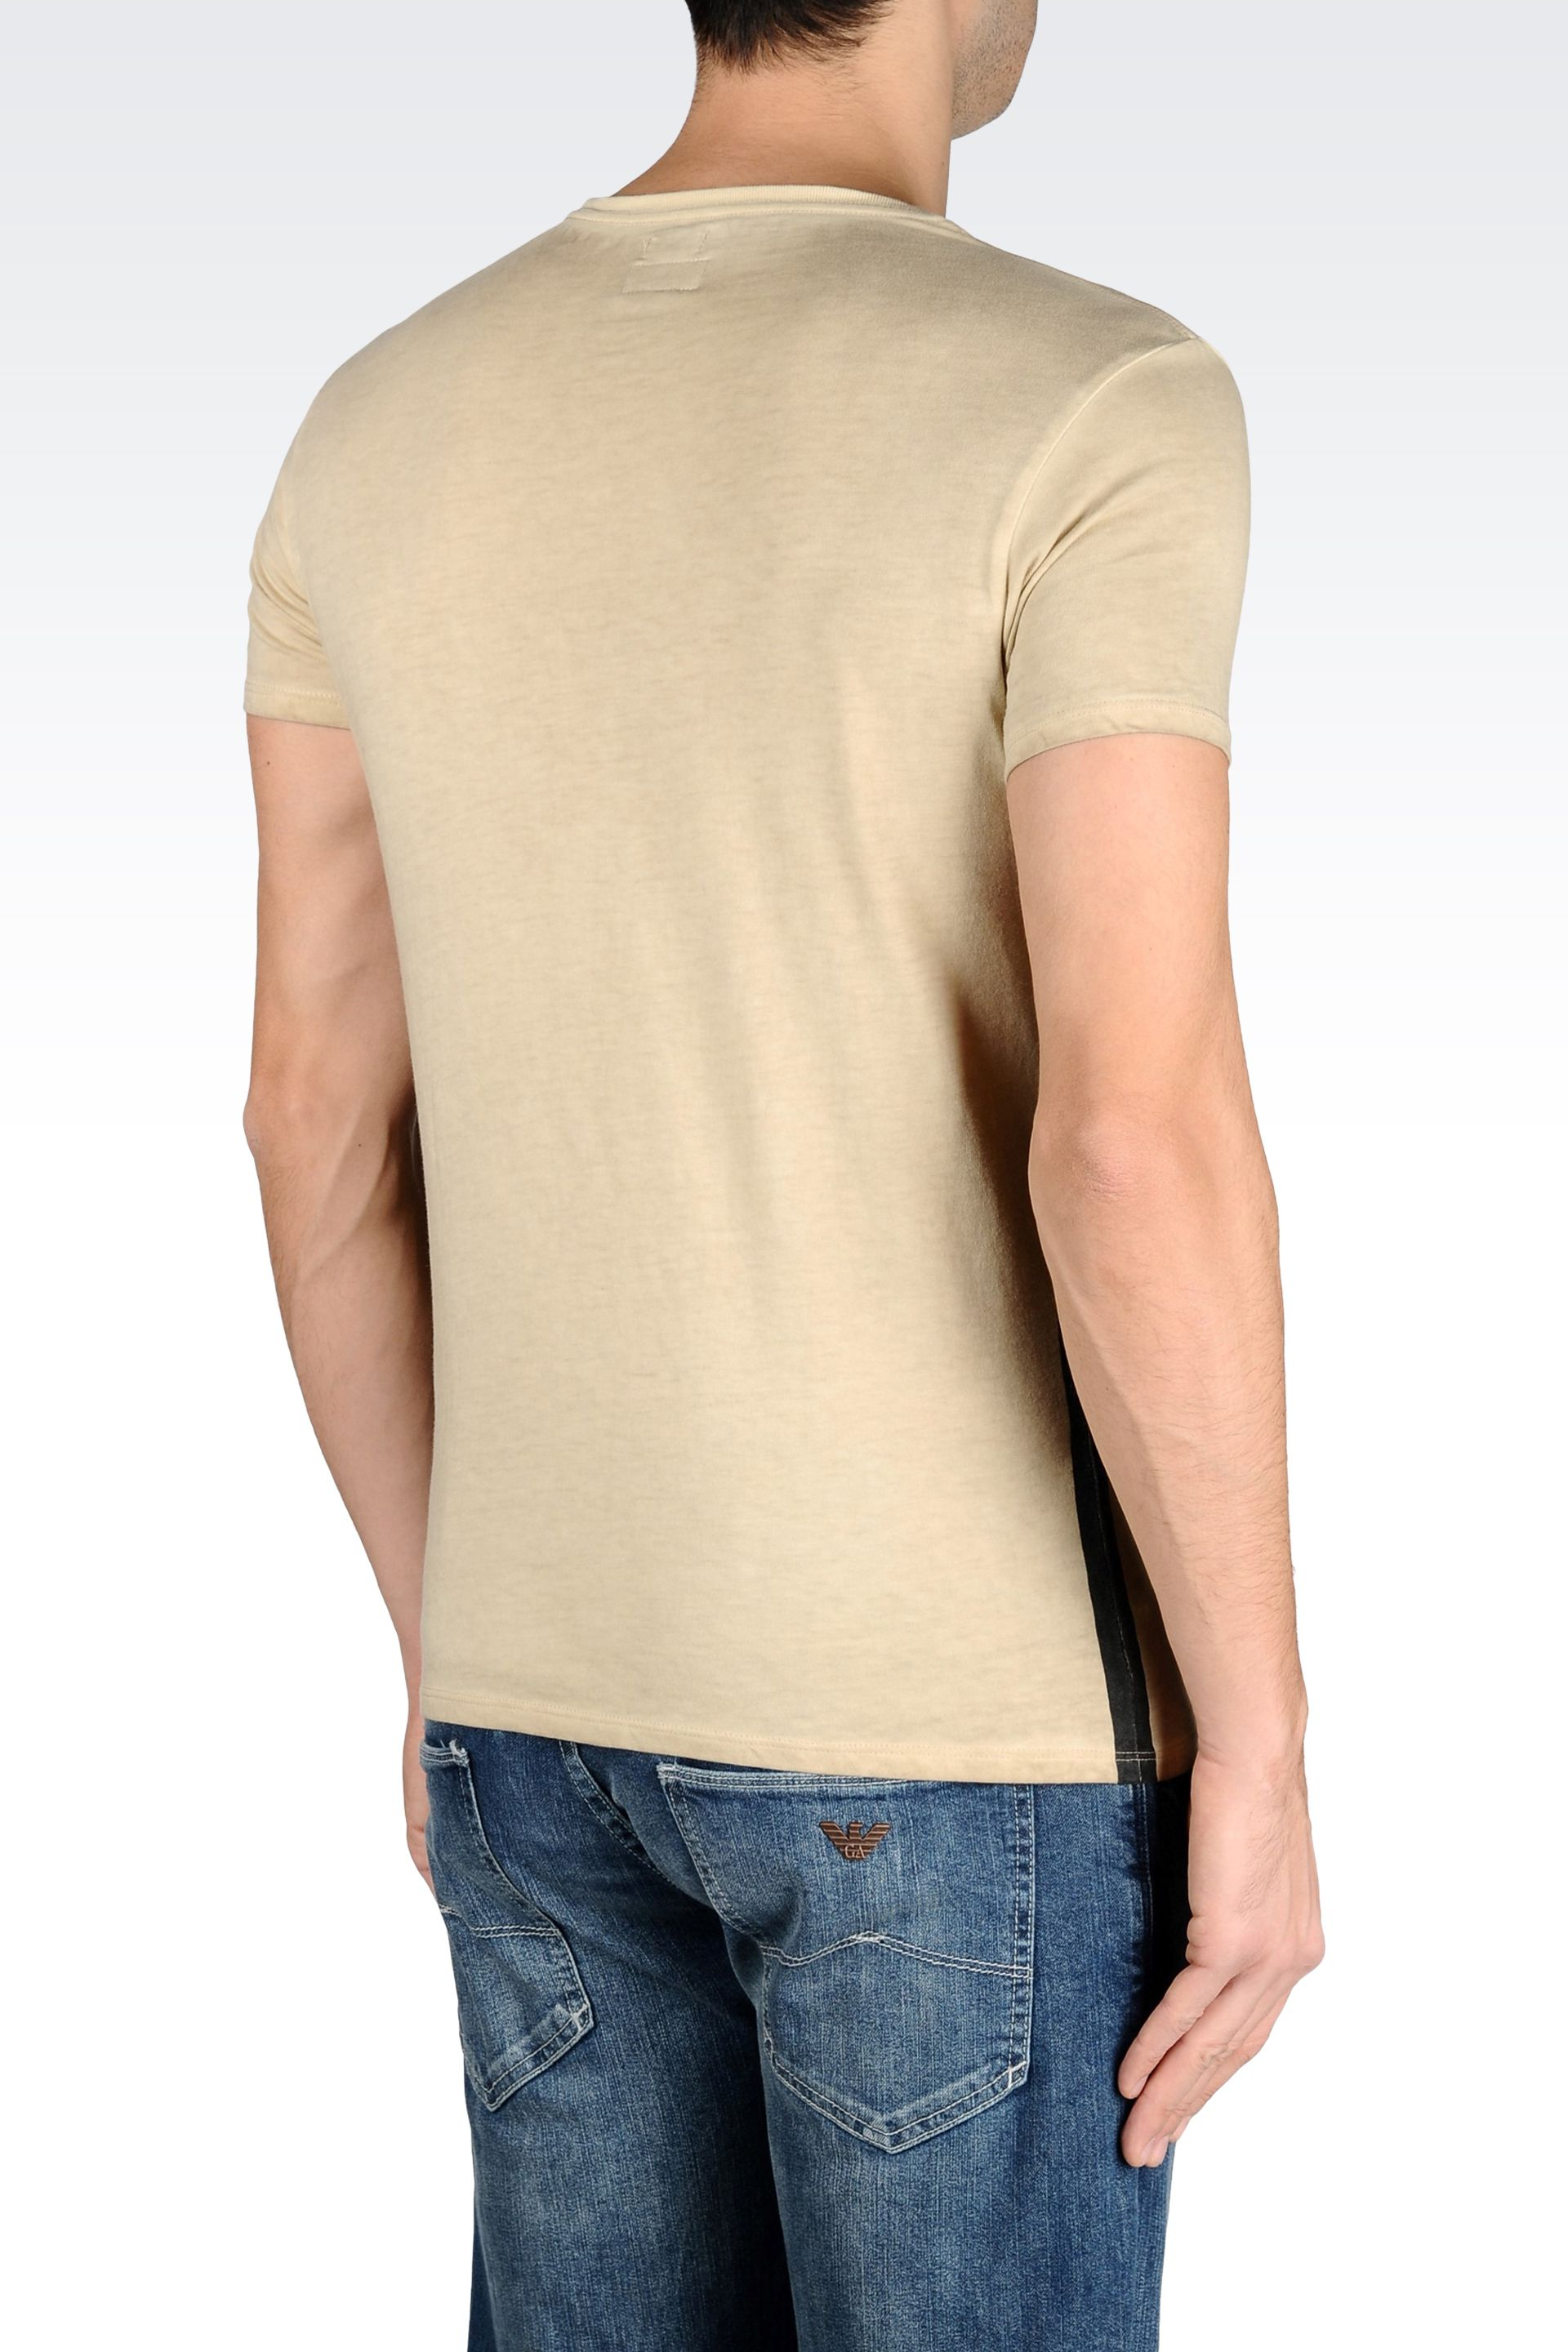 armani jeans t shirt in cotton jersey in natural for men lyst. Black Bedroom Furniture Sets. Home Design Ideas